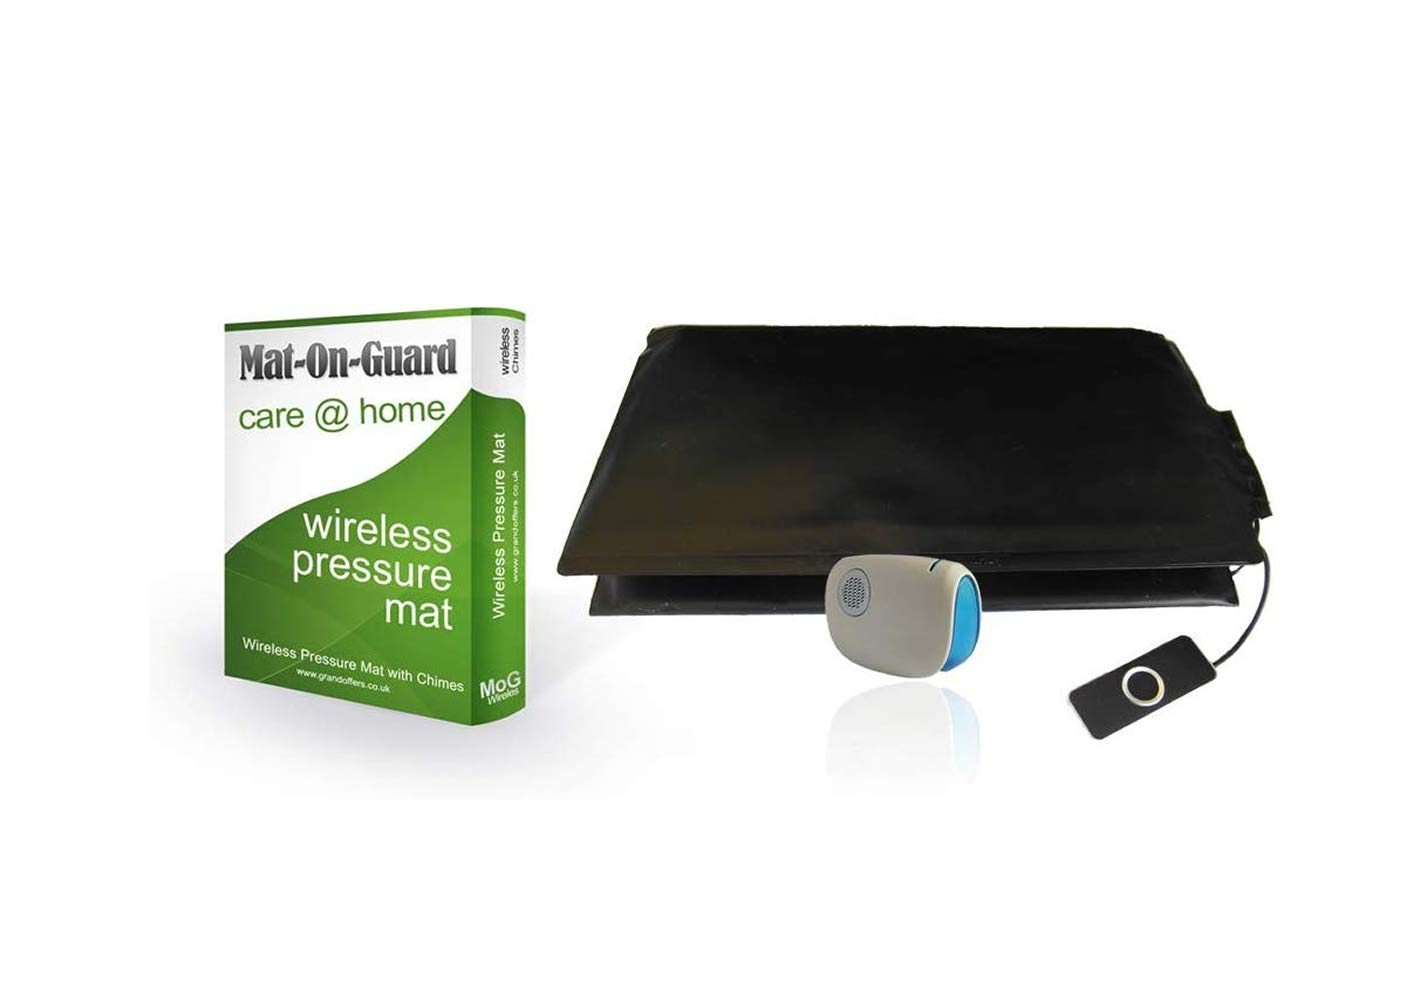 Mat-On-Guard IP-100s. NOW -- MEDICALLY DISINFECTED AND SEALED -- Wireless Dementia Health Care and wandering pressure pad carer alarm, alarm mat for the elderly, foot pressure pads (Sensor mat for the elderly and Alzheimer's).